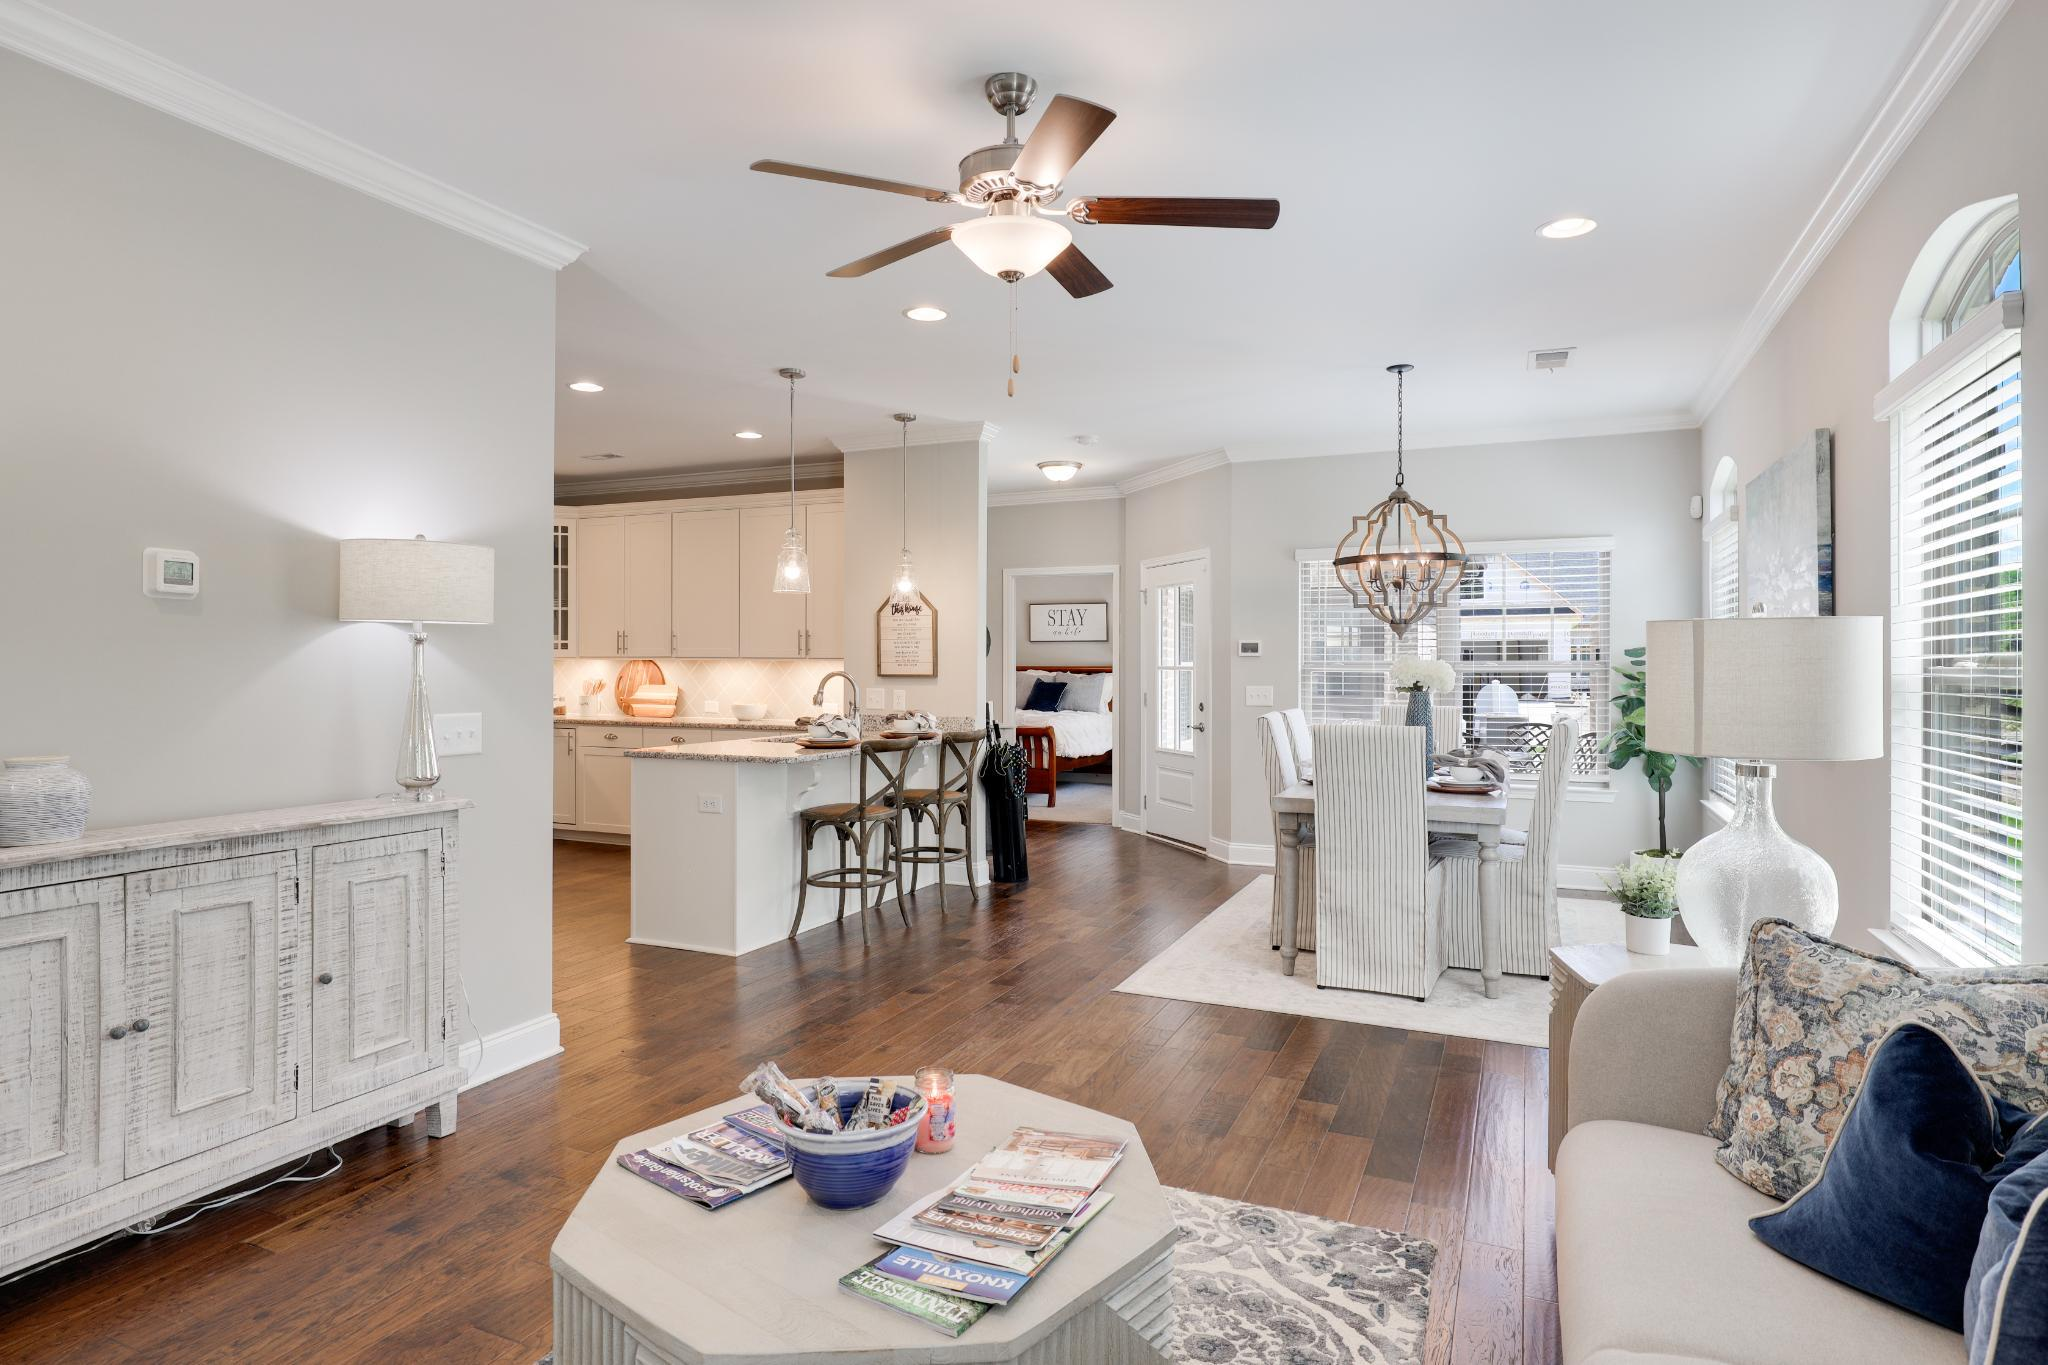 'The Village at Ivey Farms' by Goodall Homes in Knoxville